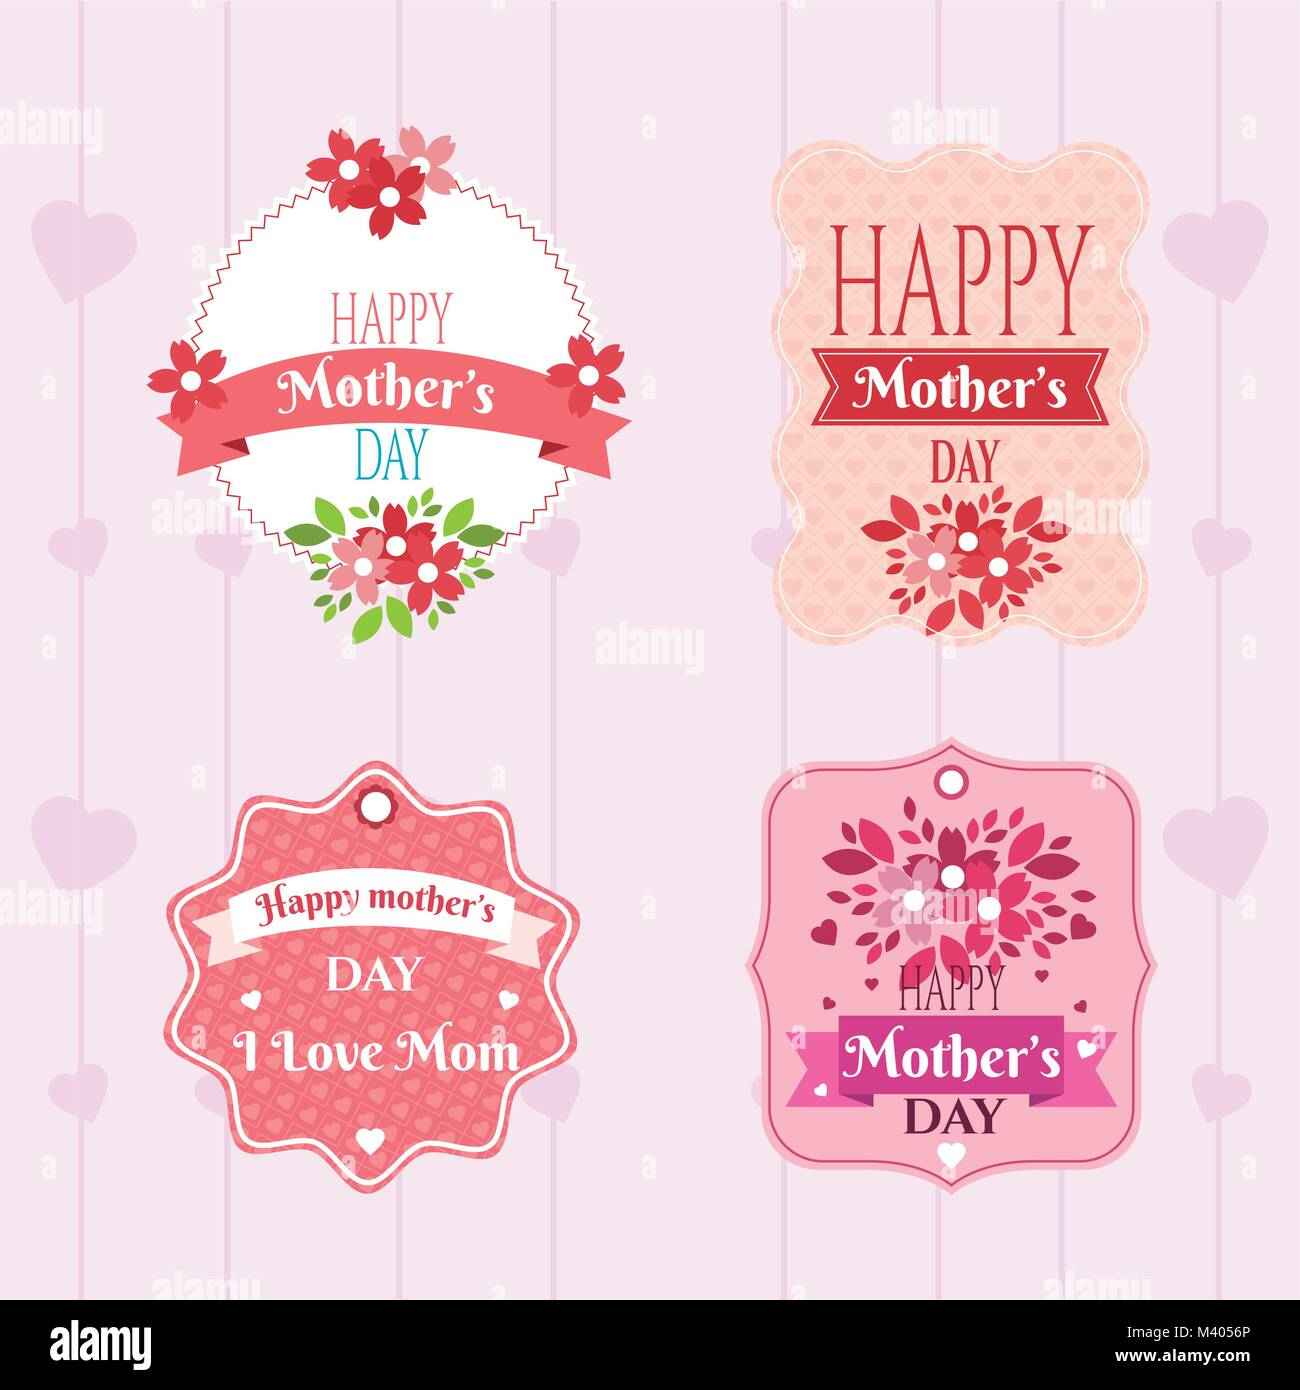 Happy mothers day emblems - Stock Image